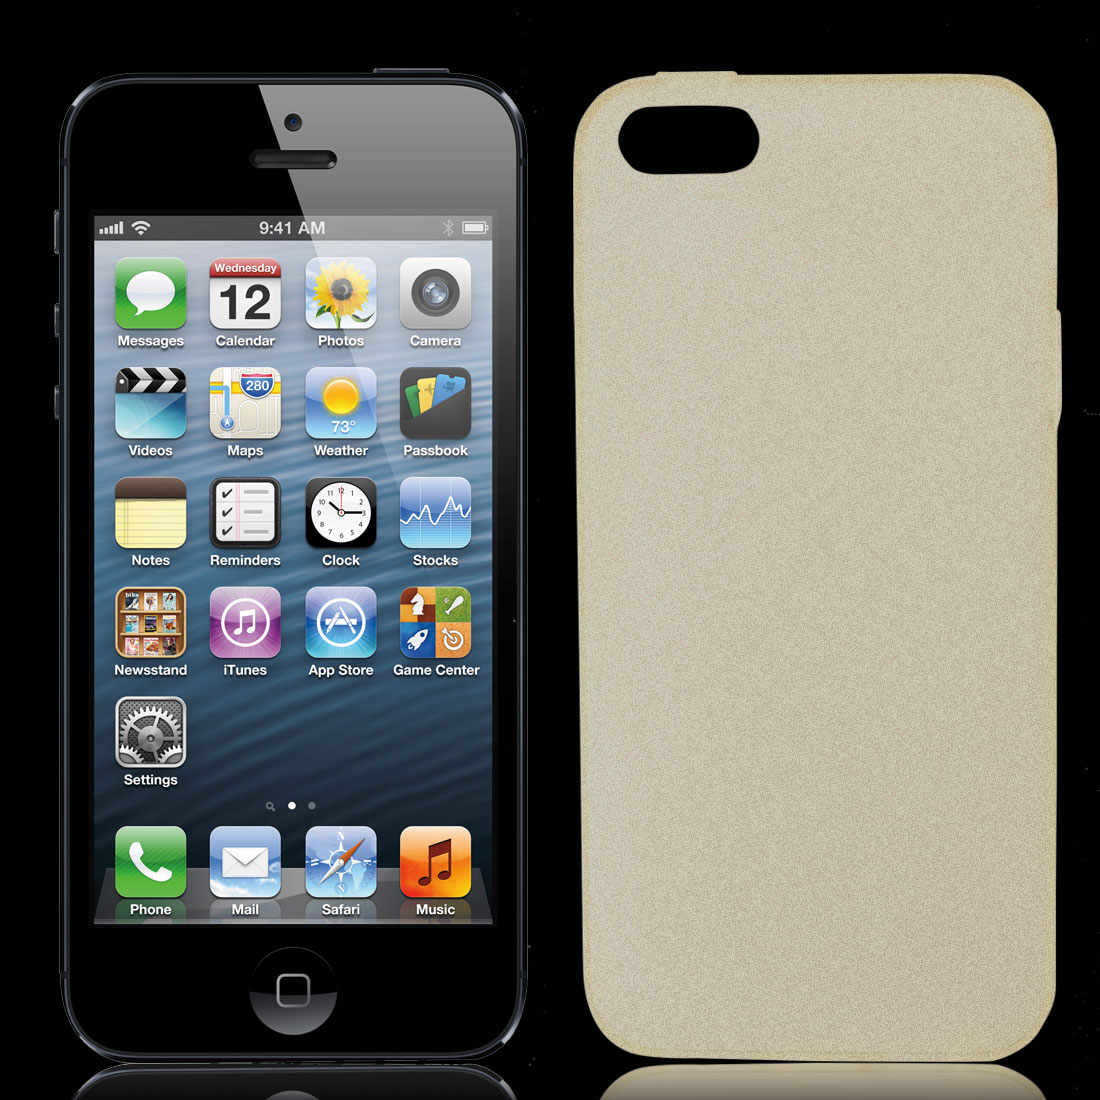 Clear Soft Plastic Matte Protective Case Cover Skin for Apple iPhone 5 5G